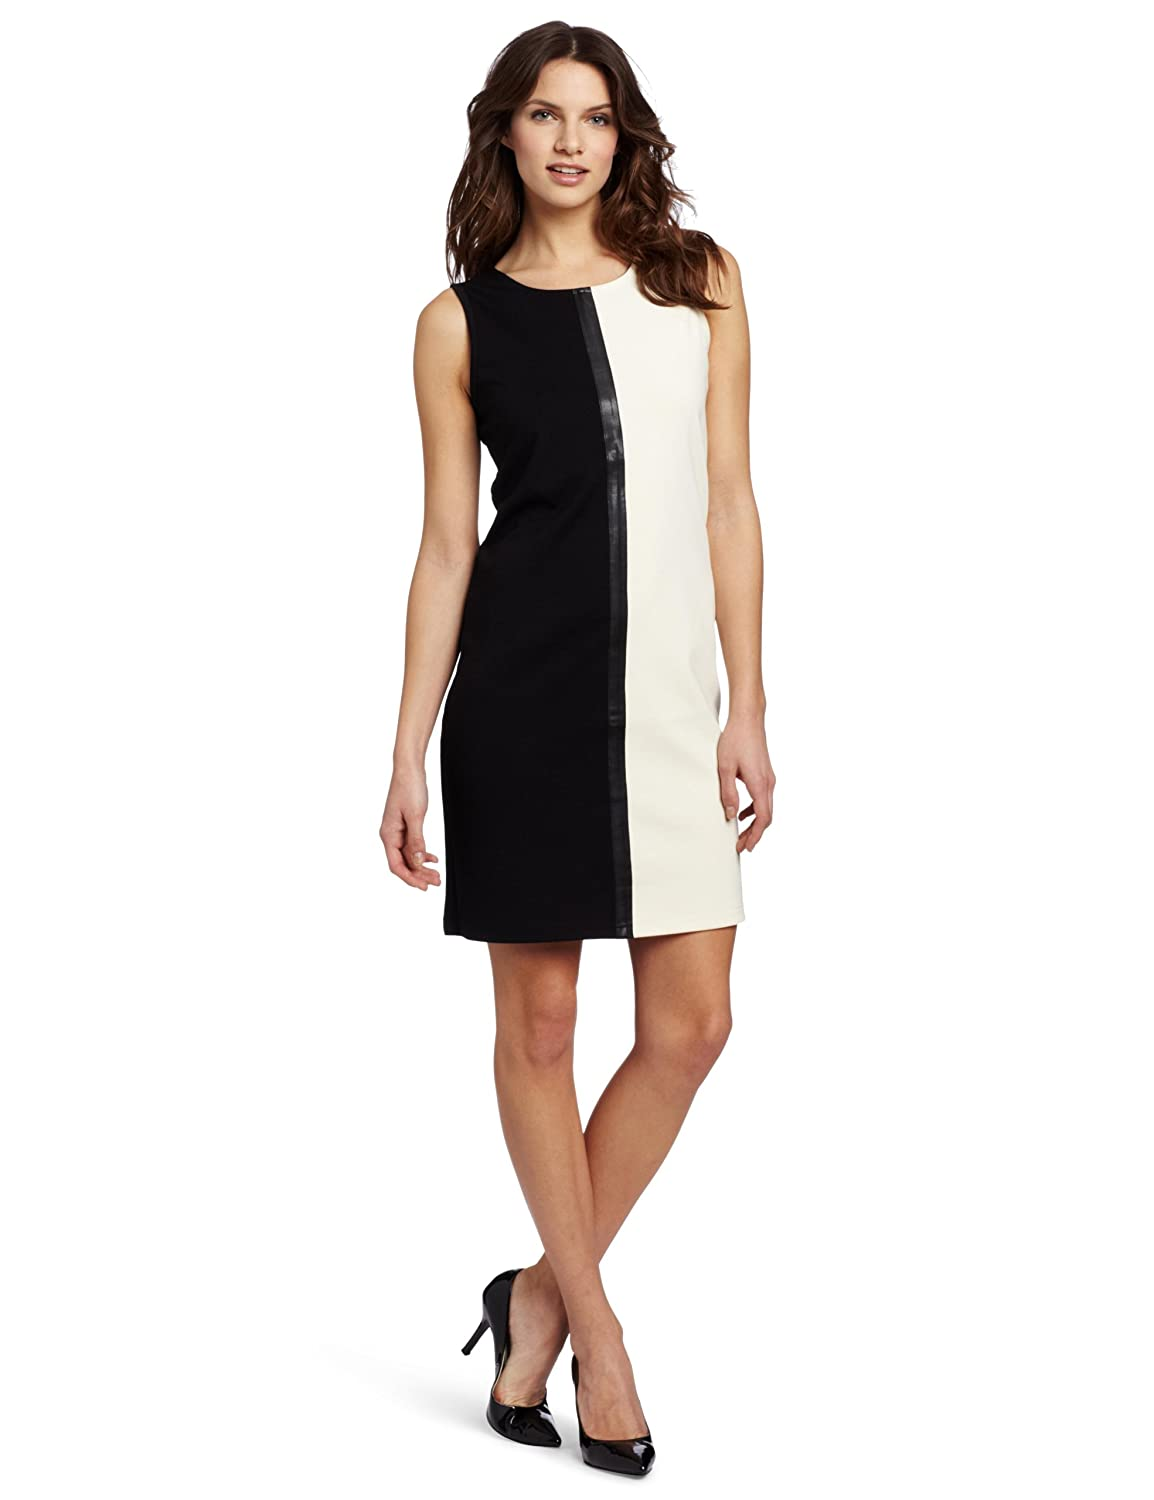 Evolution by Cyrus Women's Sleeveless Crew-Neck Color-Block Faux-Leather Trim Dress: